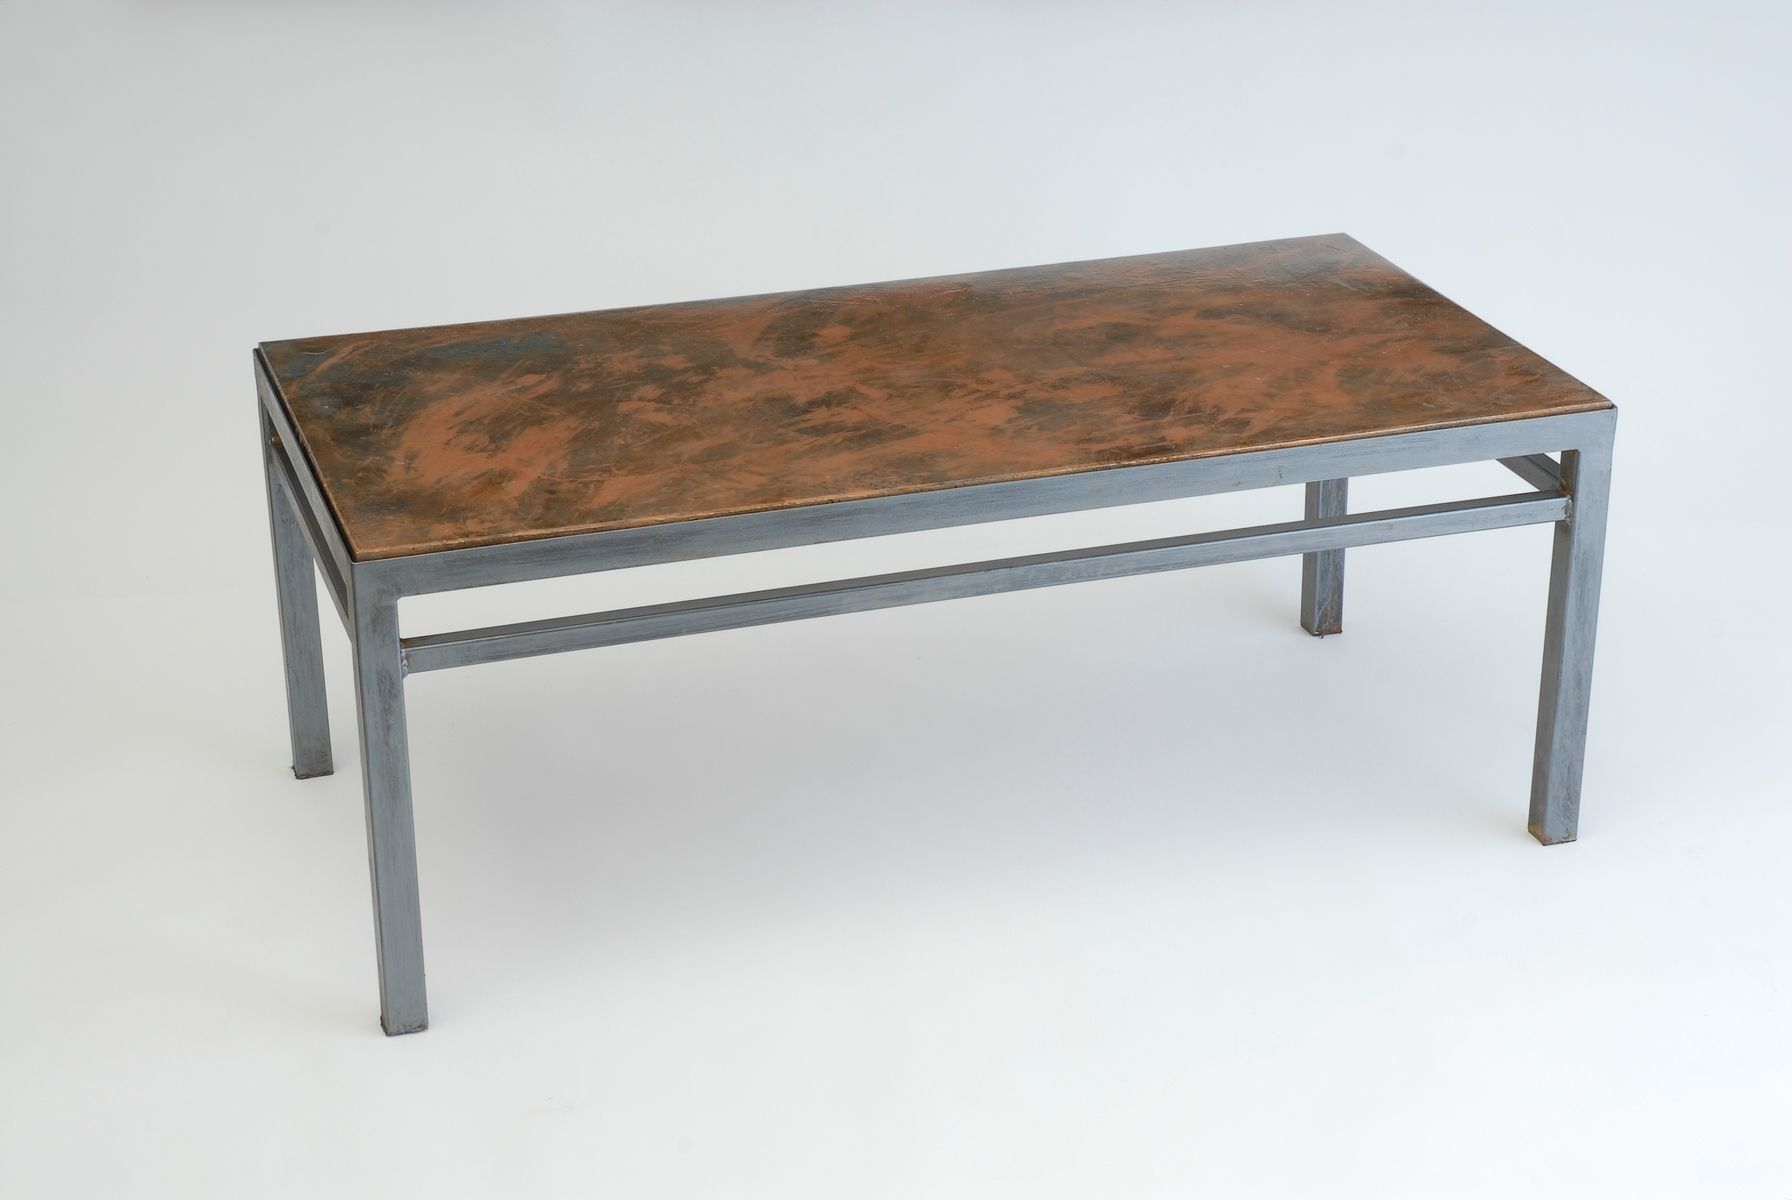 Hand Crafted Coffee Table Composite Top Steel Base By Aggie Design Company